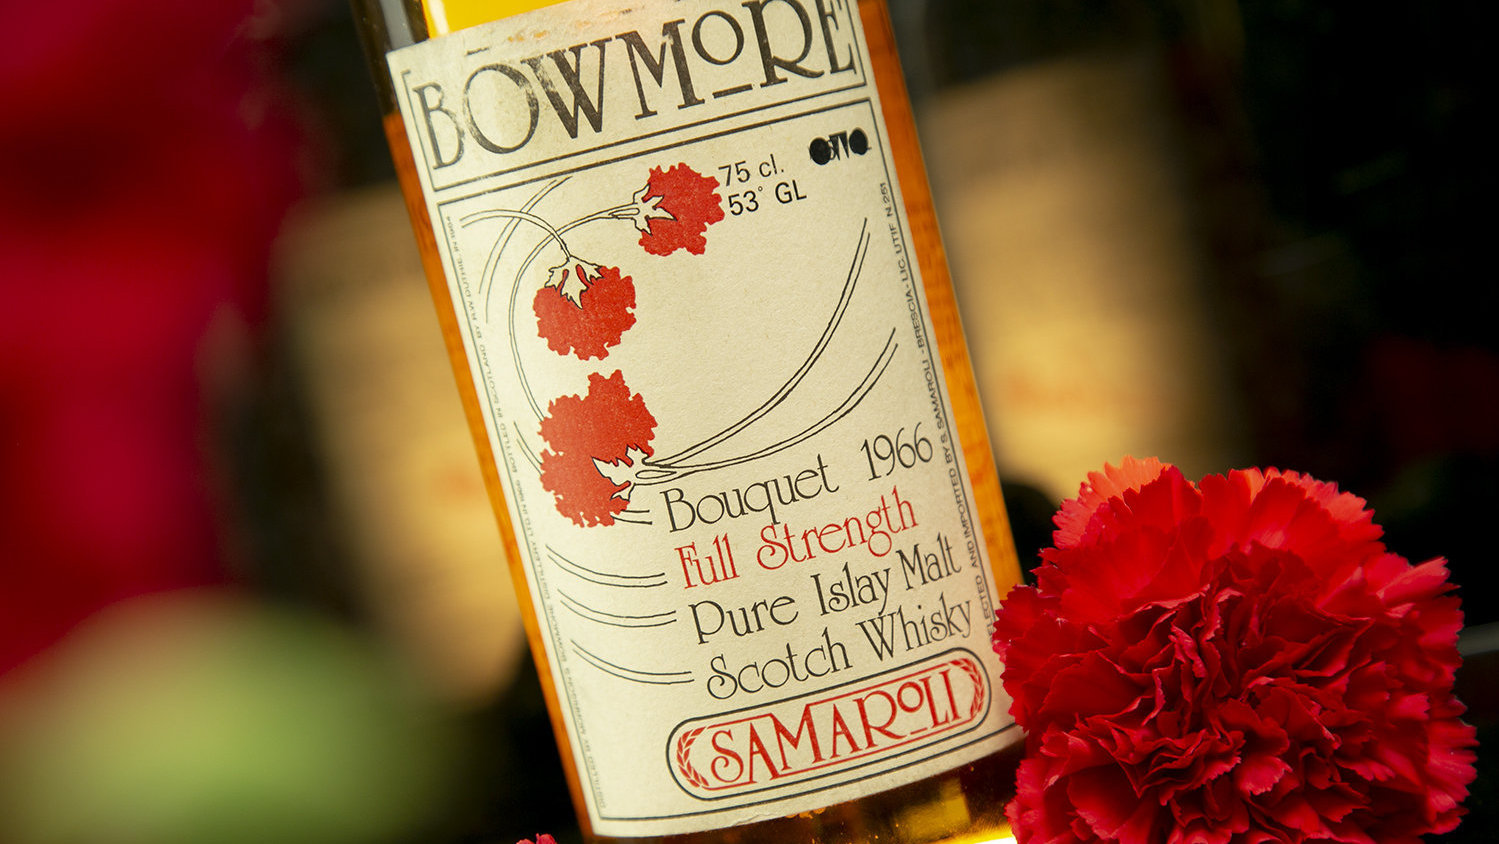 The Bowmore 1966 Samaroli Bouquet attracted more than 50 bid from around the world and smashed the previous record